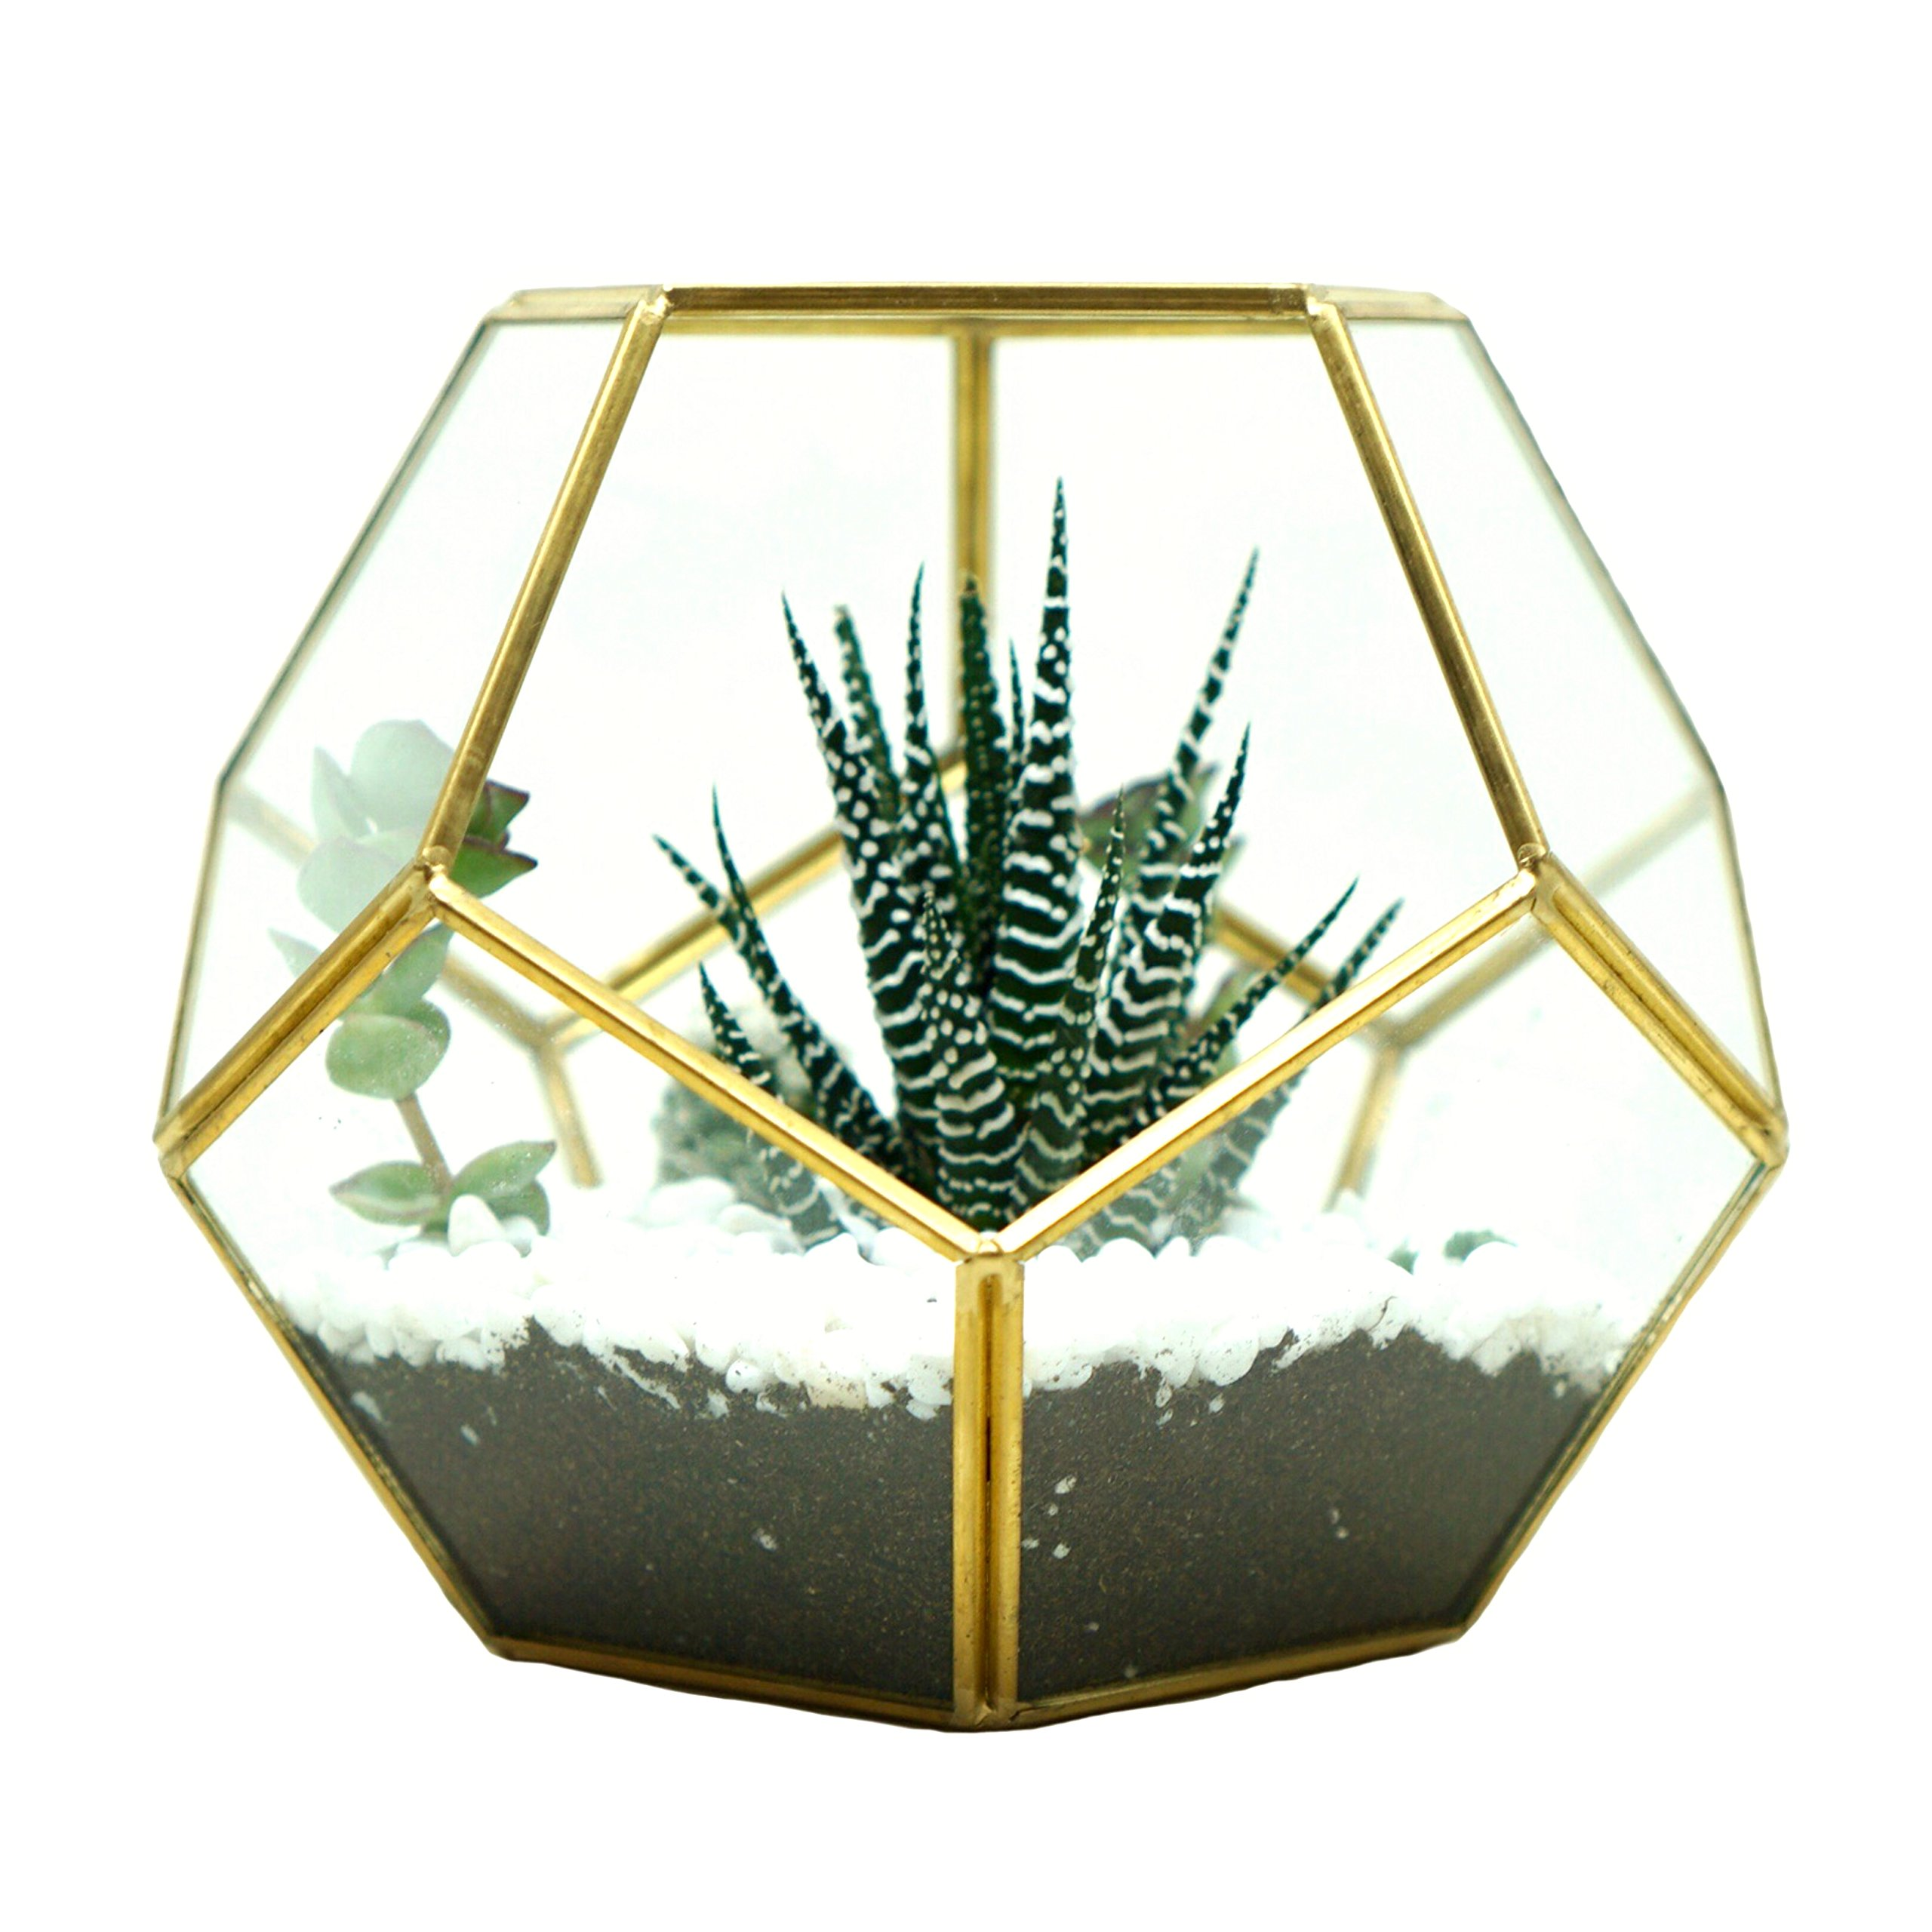 Glass Terrarium Brass Pentagon Regular Dodecahedron Geometric Container, LoveNite Sphere Terrarium Desktop Planter for Succulent Fern Moss Air Plants (Gold) by LoveNite